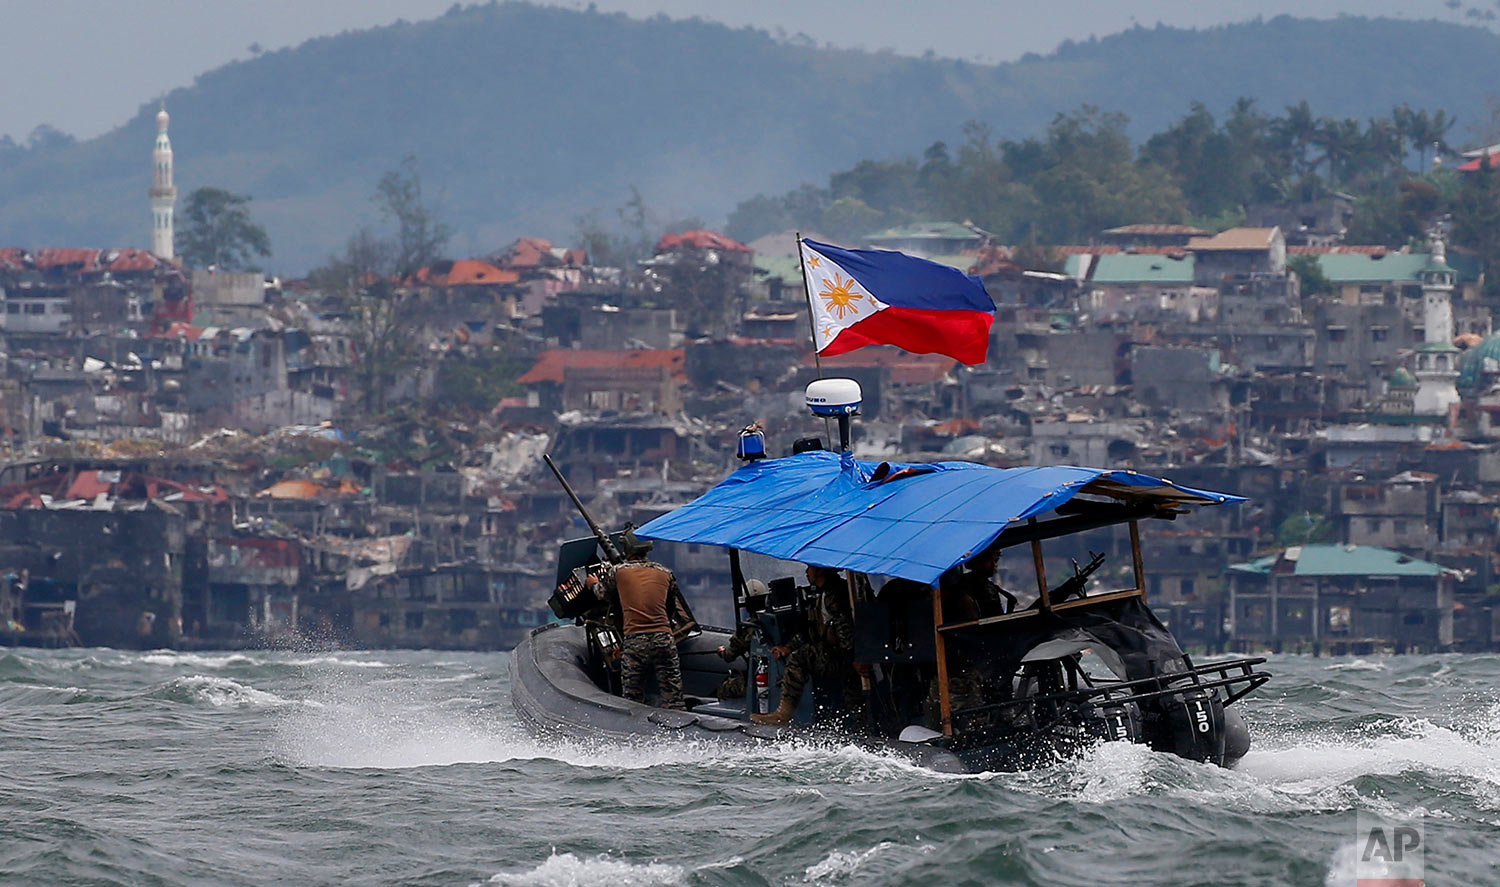 """Philippine Navy commandos aboard a gunboat patrol the periphery of Lake Lanao as smoke rises from the """"Main Battle Area"""" where pro-Islamic group militants are making a final stand amid a massive military offensive of Marawi city in southern Philippines Thursday, Oct. 19, 2017. Two days after President Rodrigo Duterte declared the liberation of Marawi city, the military announced the killing of 13 more suspected militants in the continuing military offensive. (AP Photo/Bullit Marquez)"""